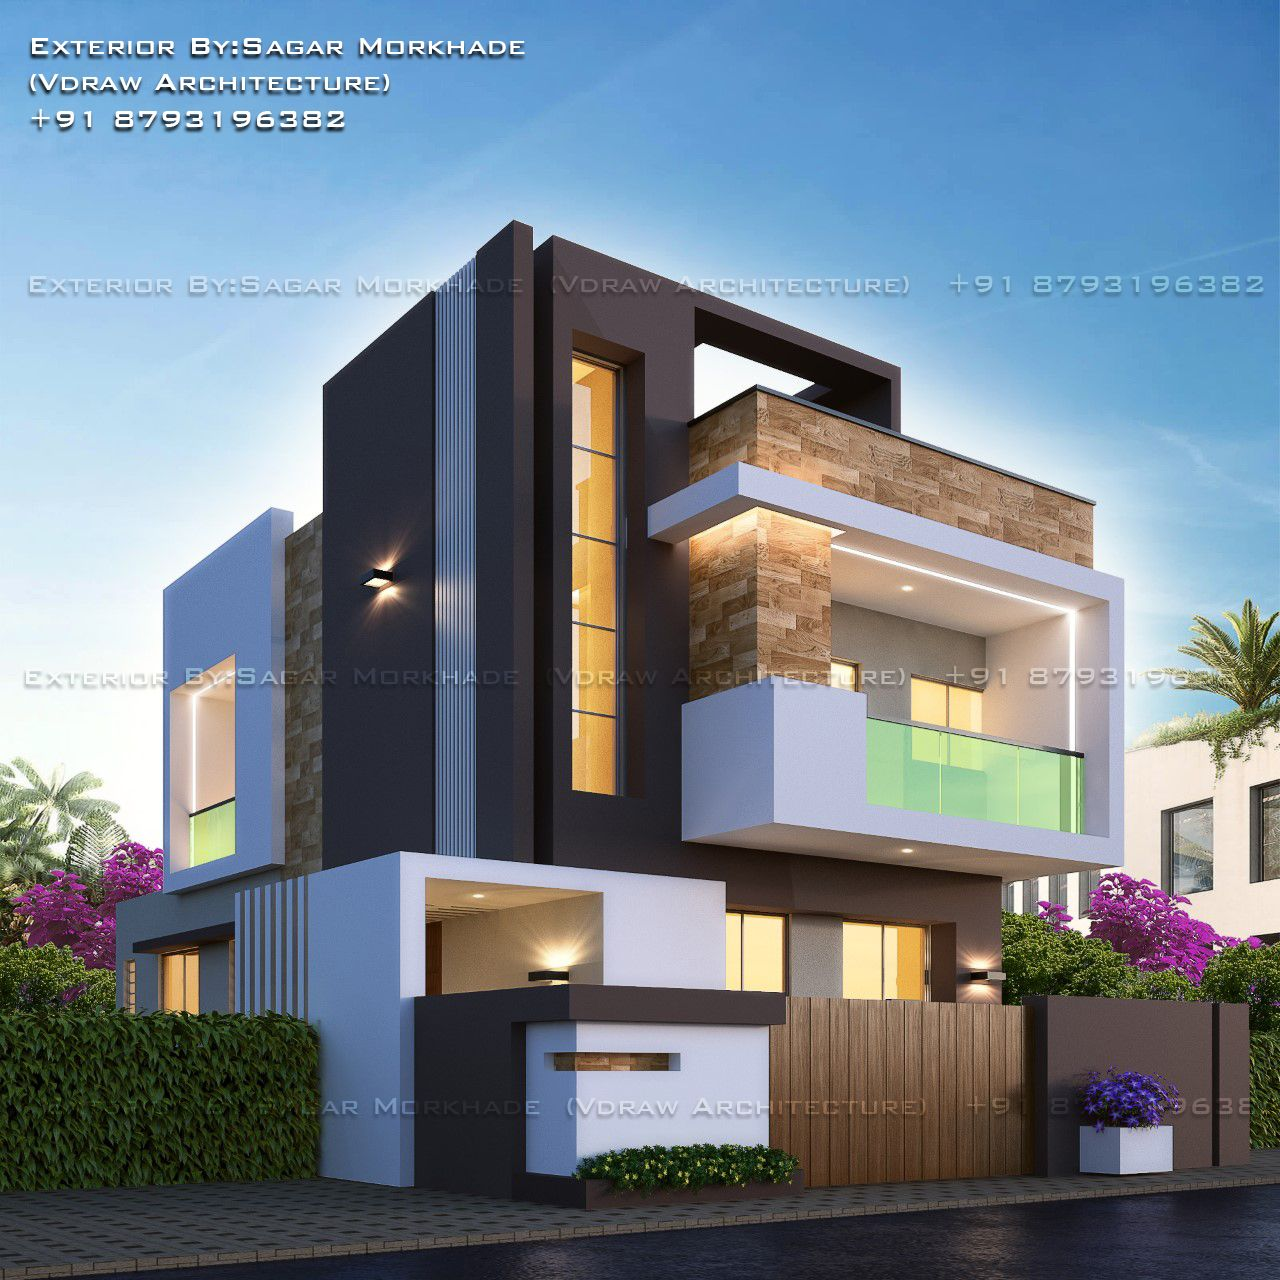 Modern residential house bungalow exterior by argar morkhade vdraw architecture also rh pinterest